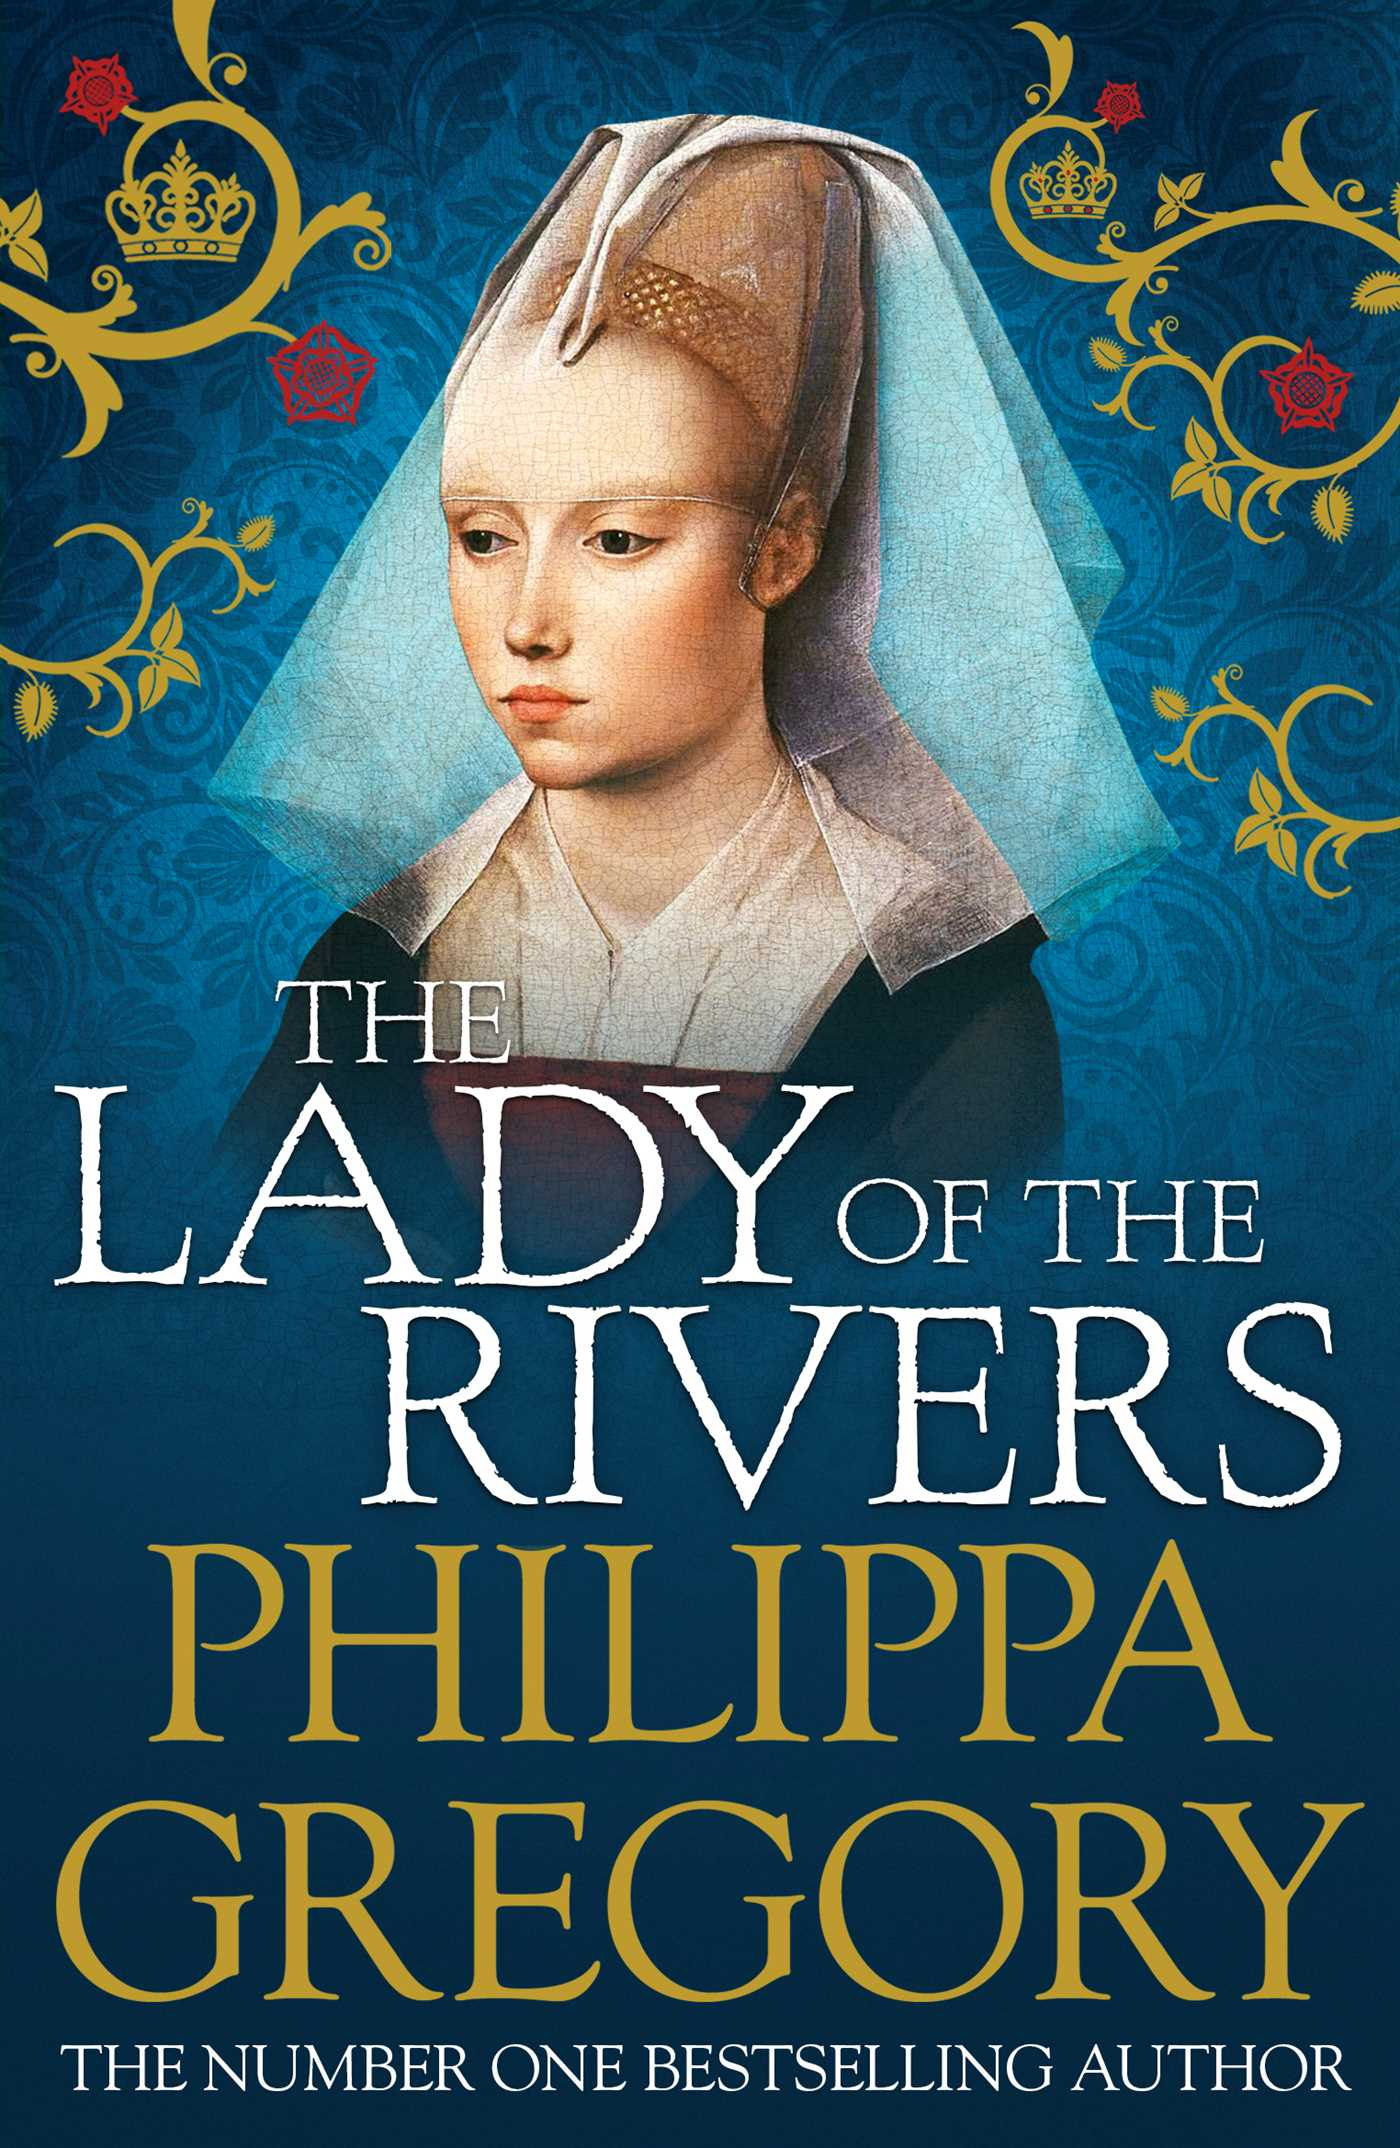 THE LADY OF THE RIVERS